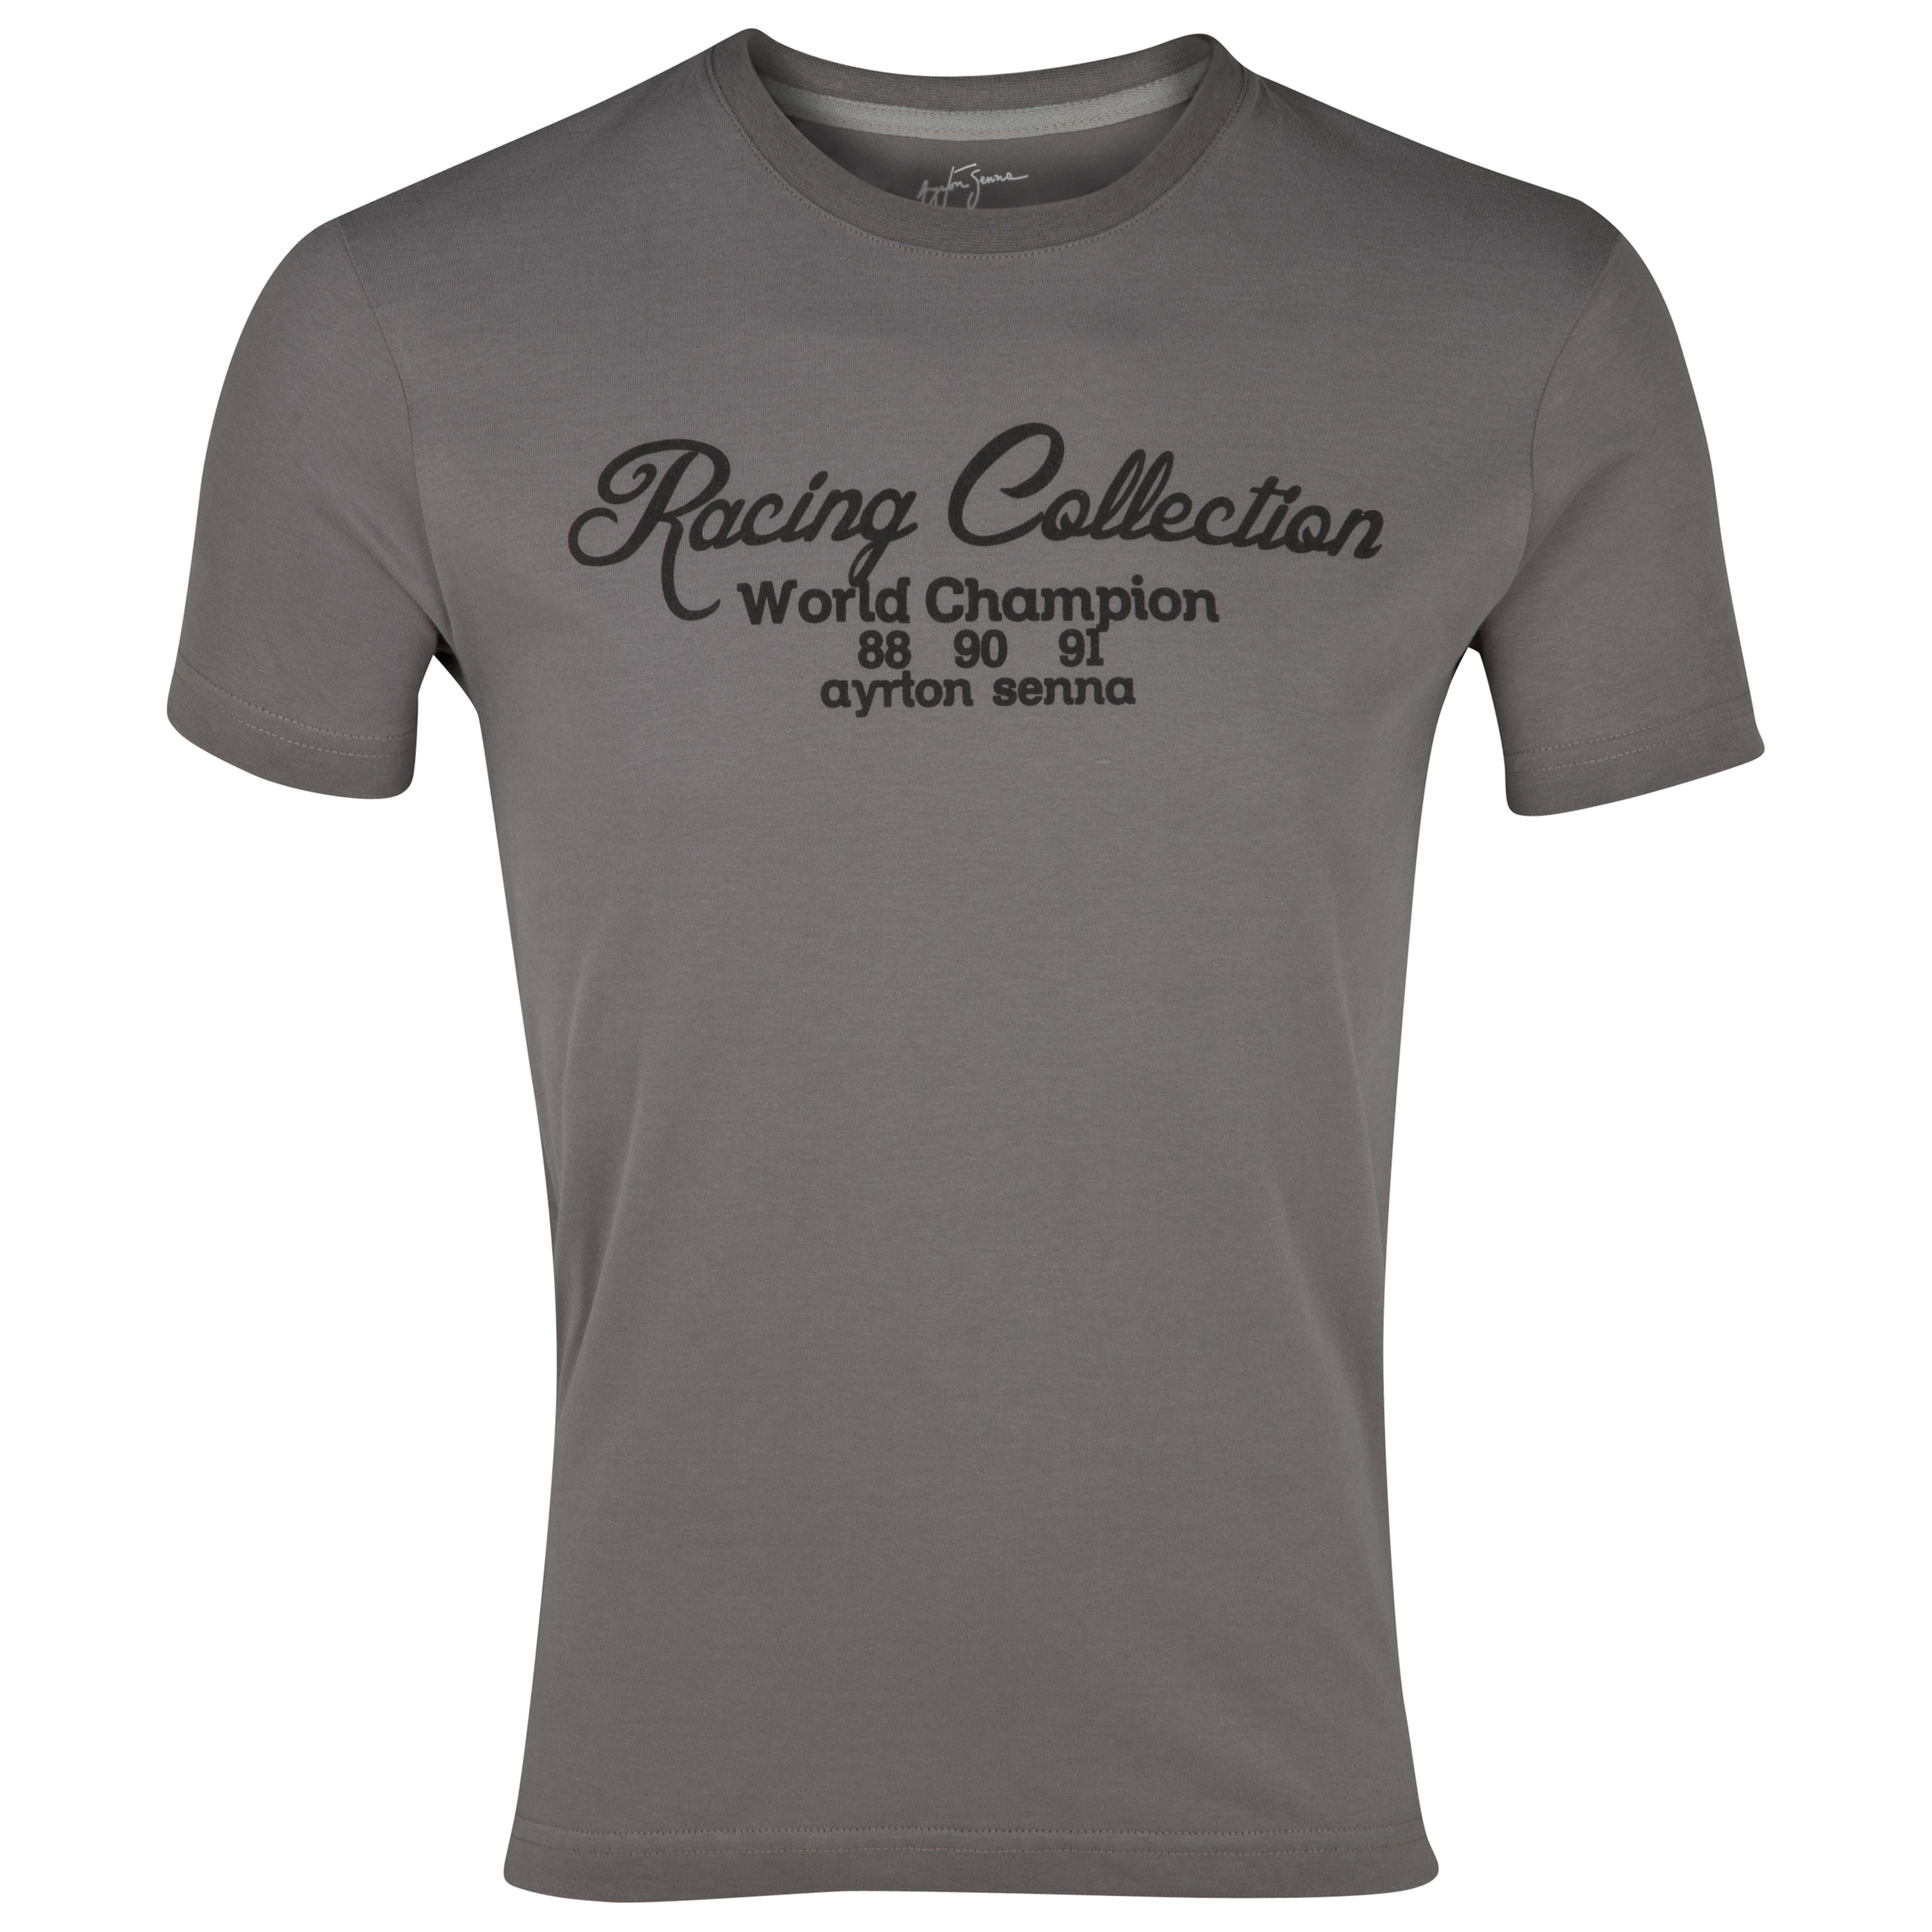 Ayrton Senna Racing Collection T-Shirt  - Grey